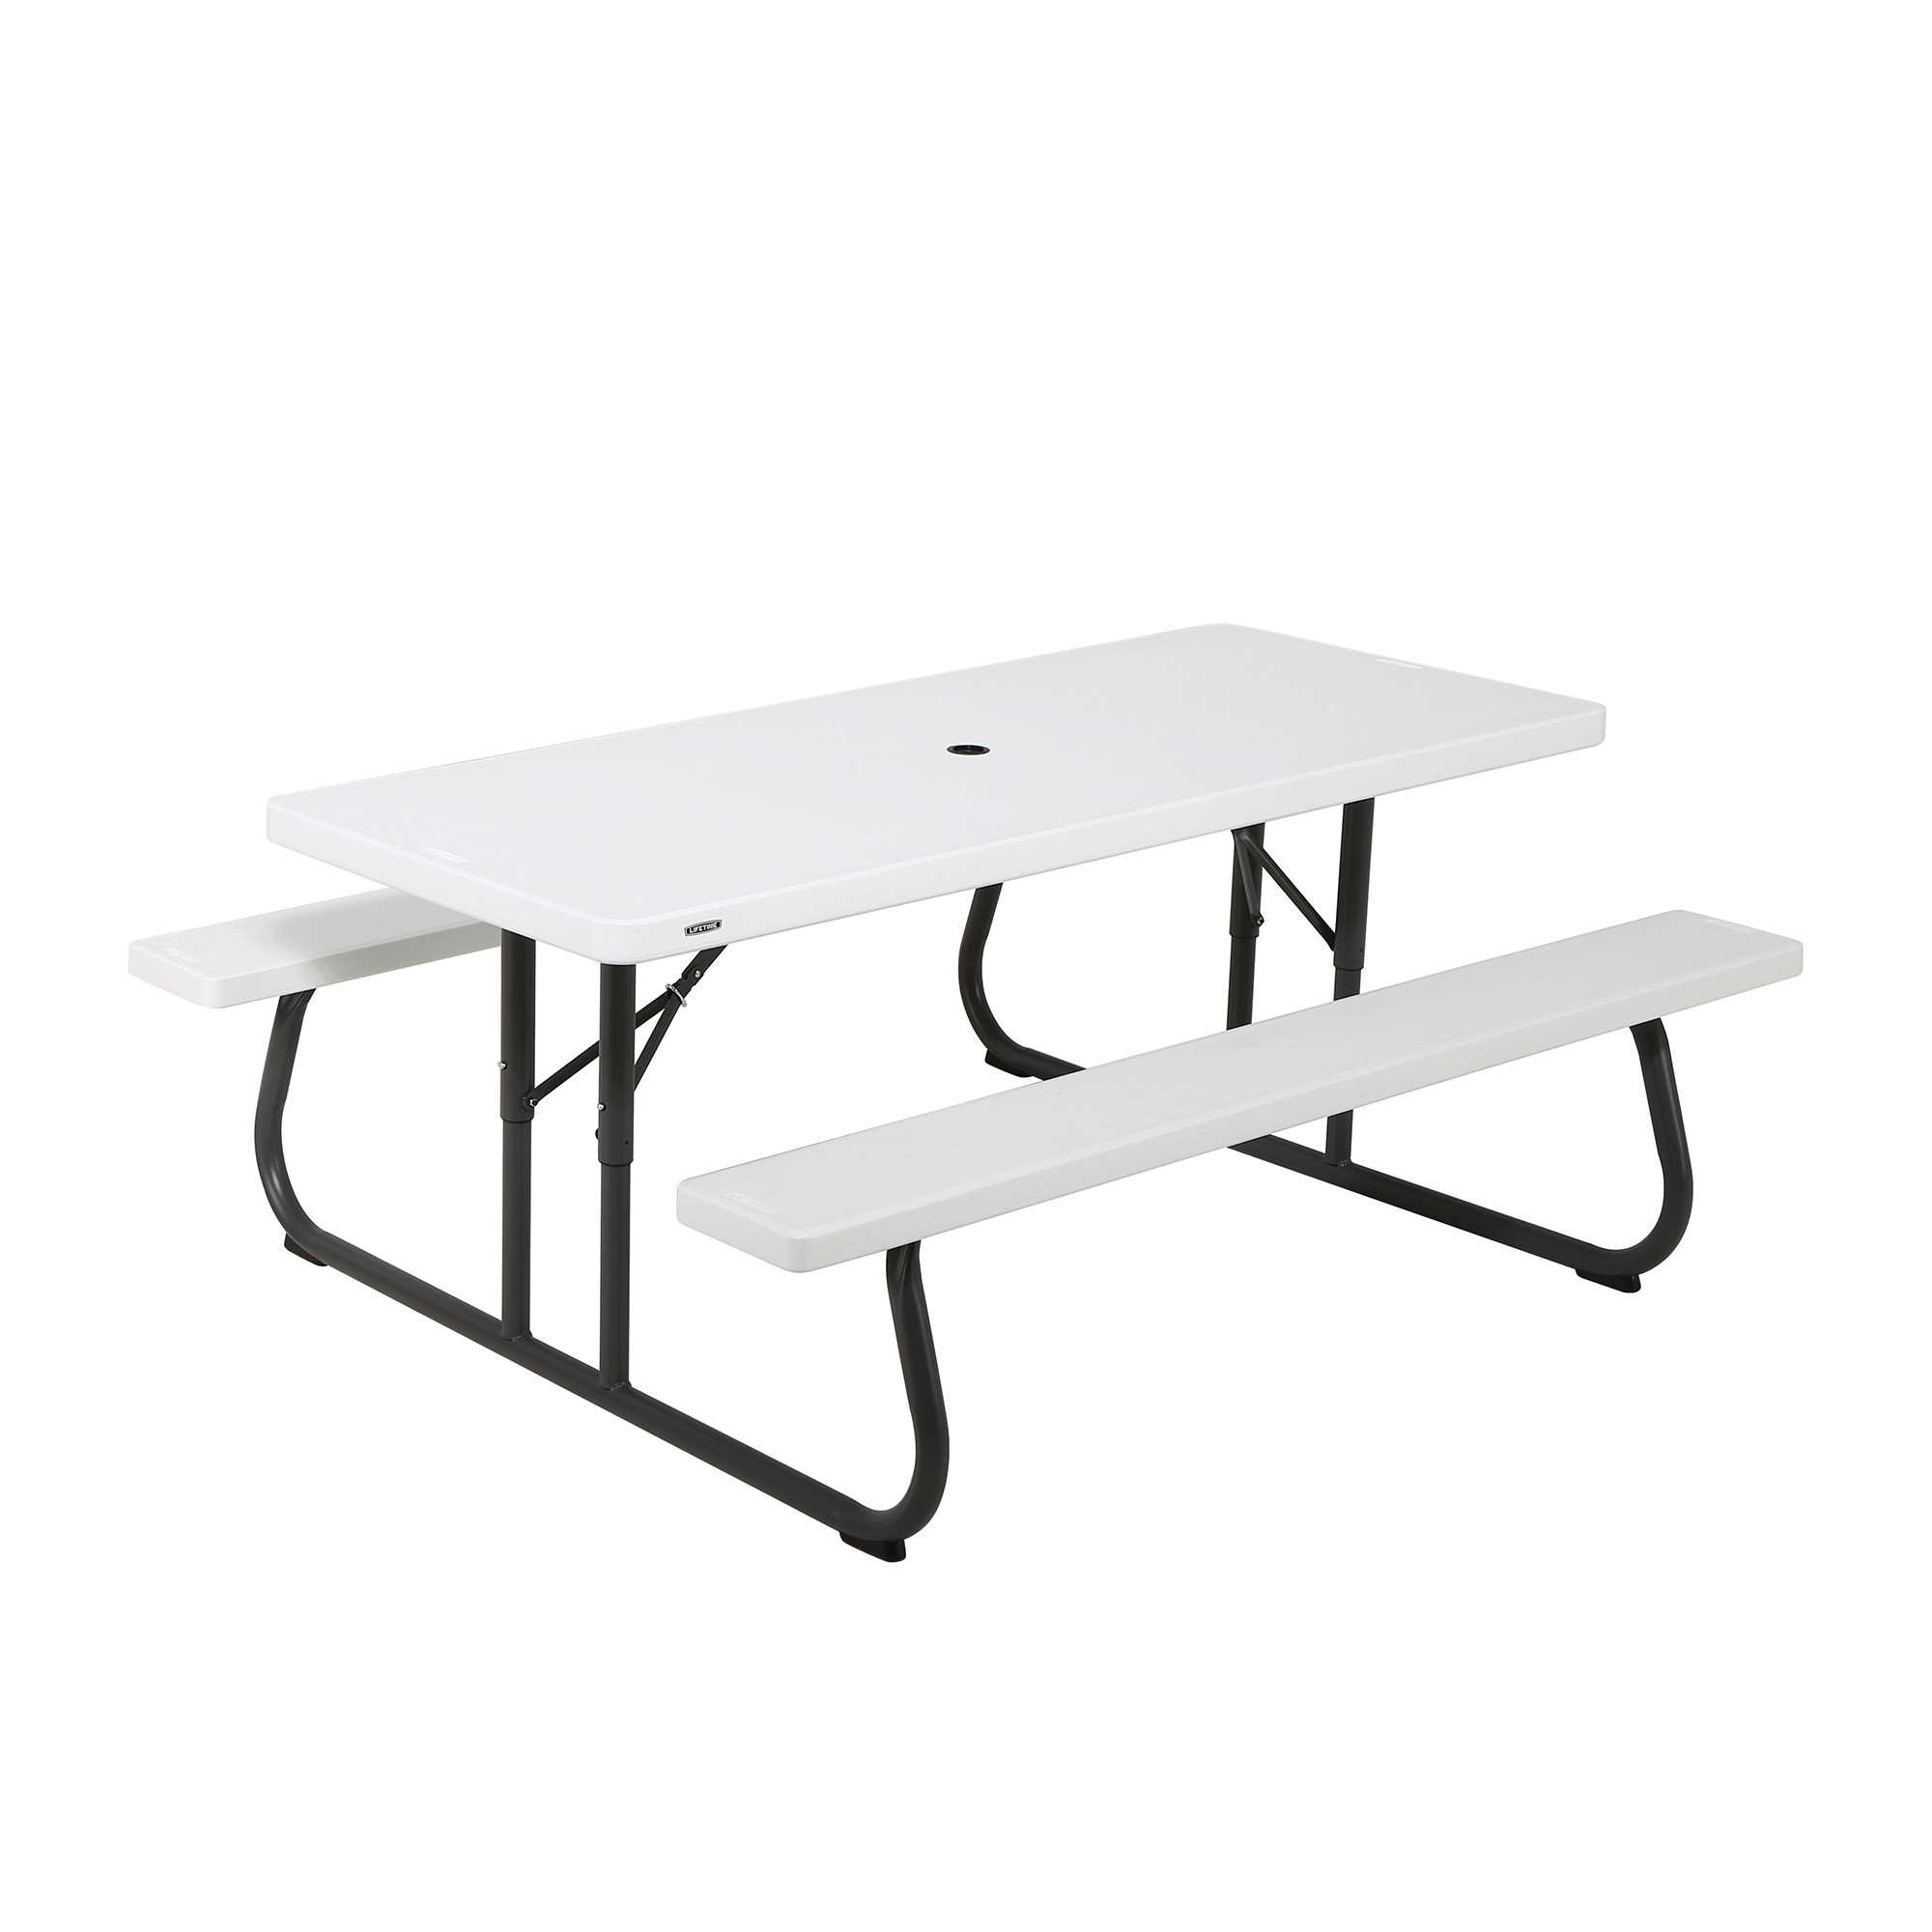 Lifetime 6-Foot Classic Folding Picnic Table